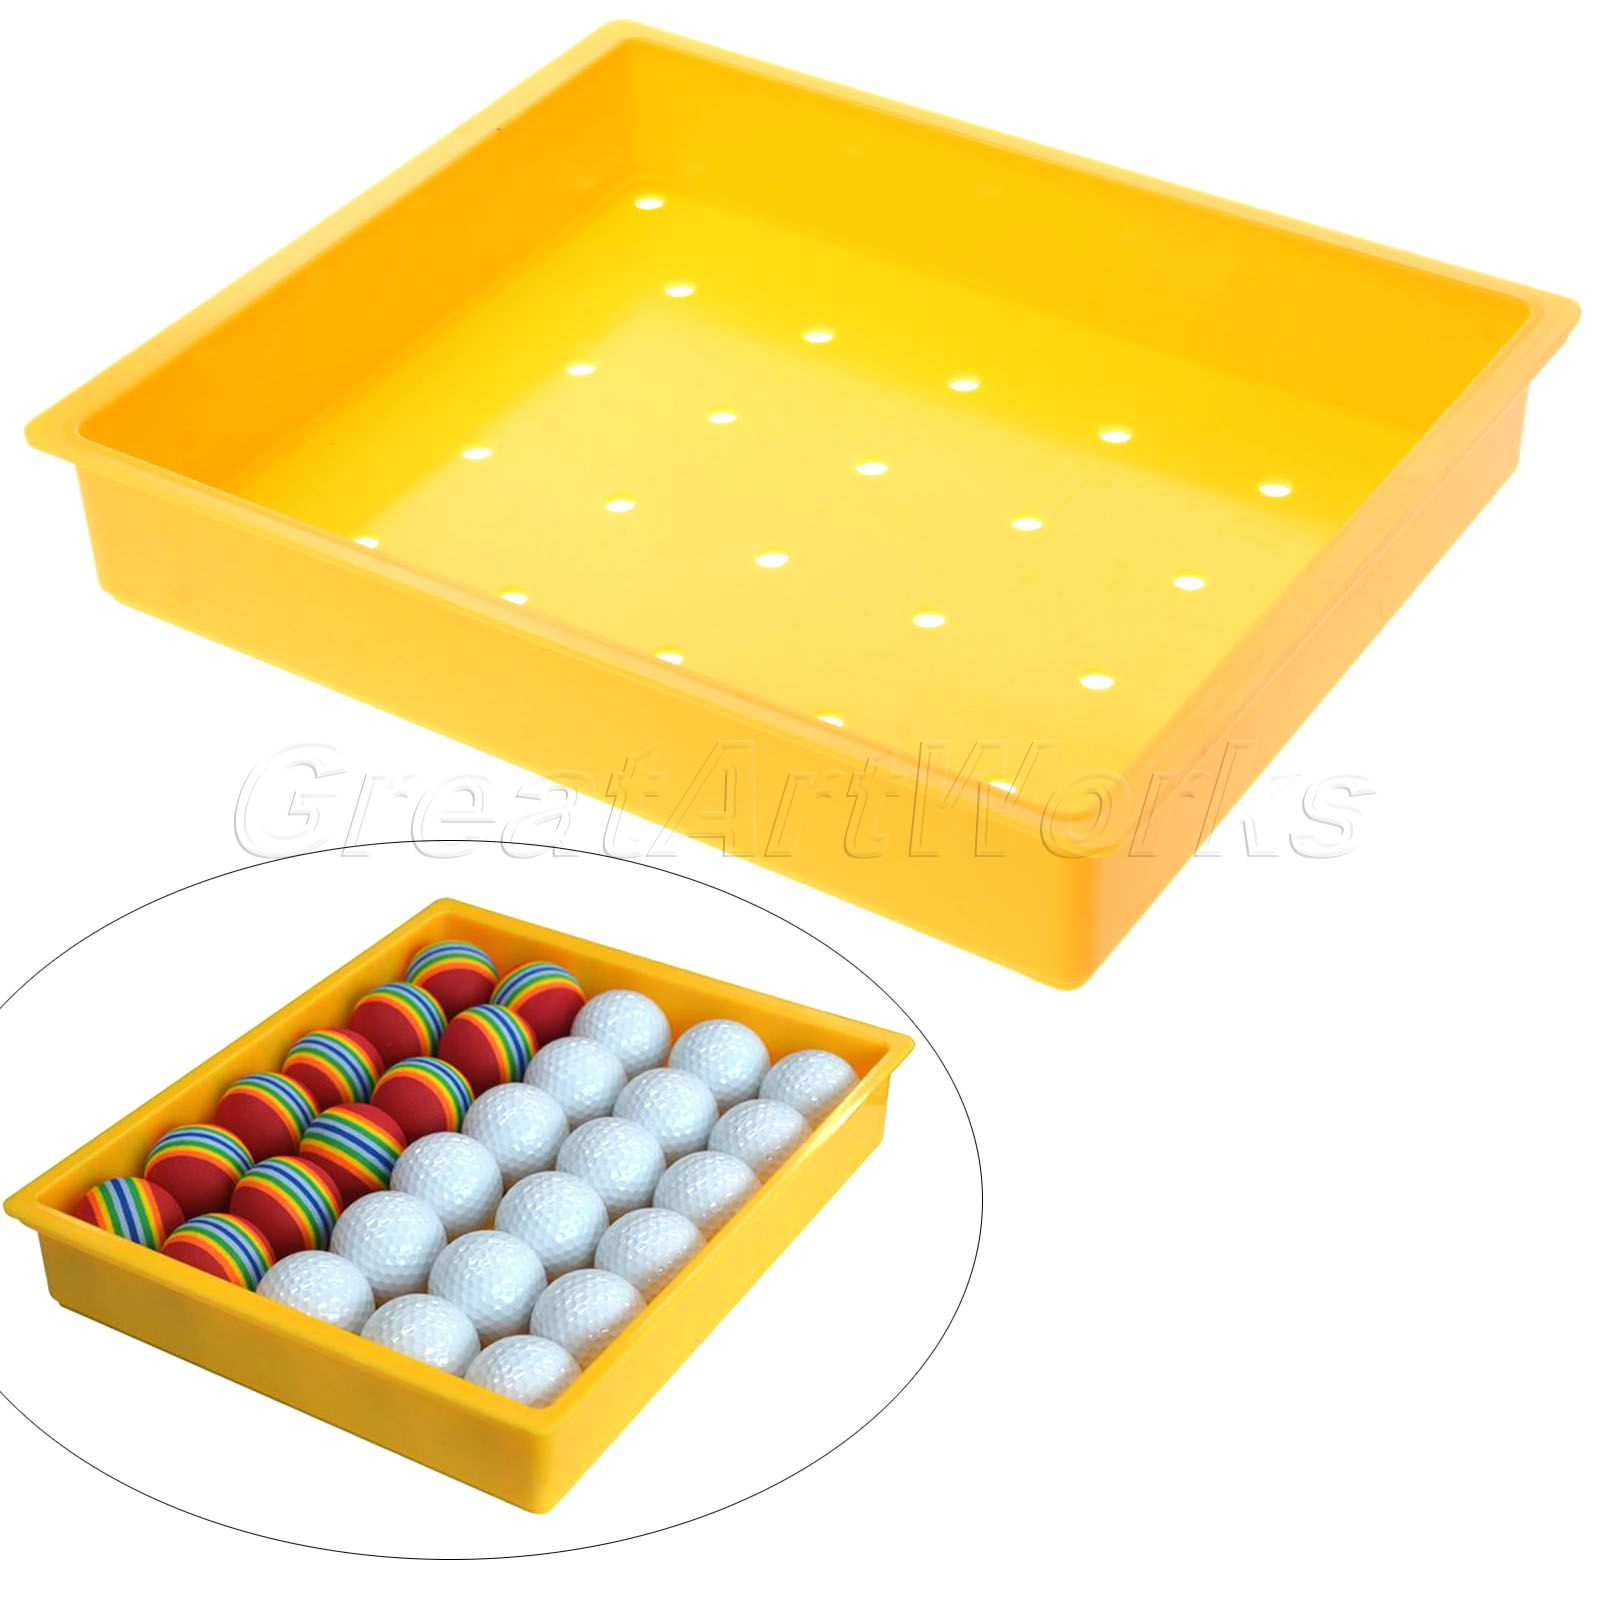 2016 1Pc Golf Ball Box Container New specials golf Ball bags high-grade Plastic material package Ball Tray Golf Range Ball Box(China (Mainland))